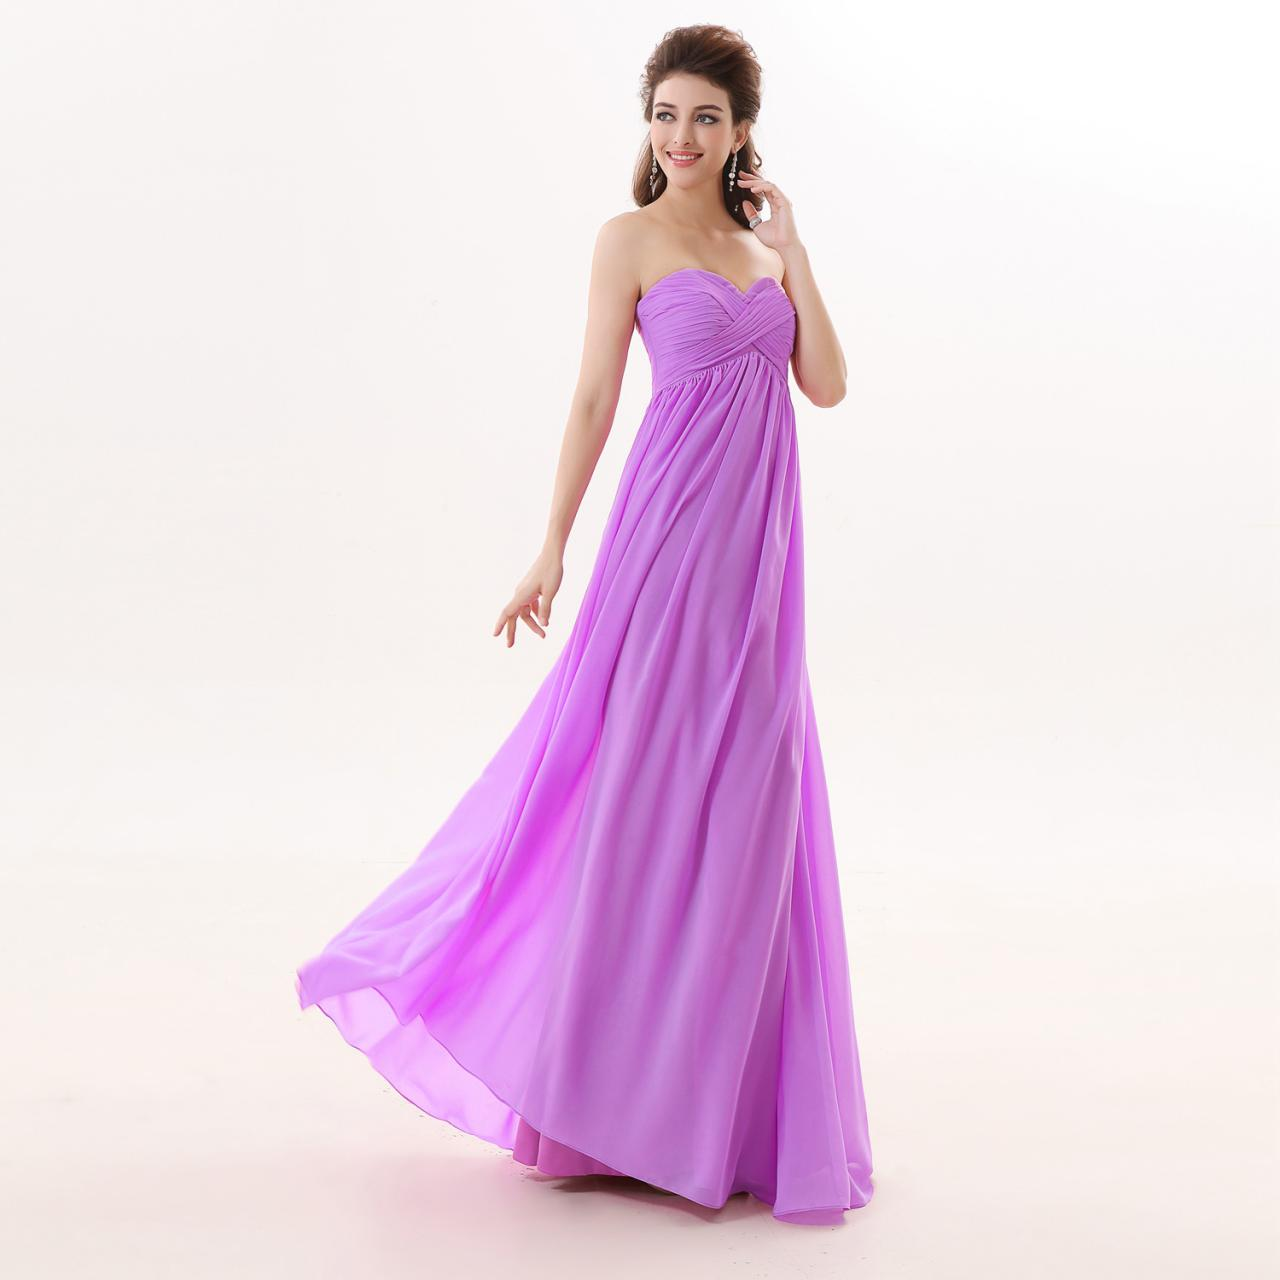 Light Purple Floor Length Dress